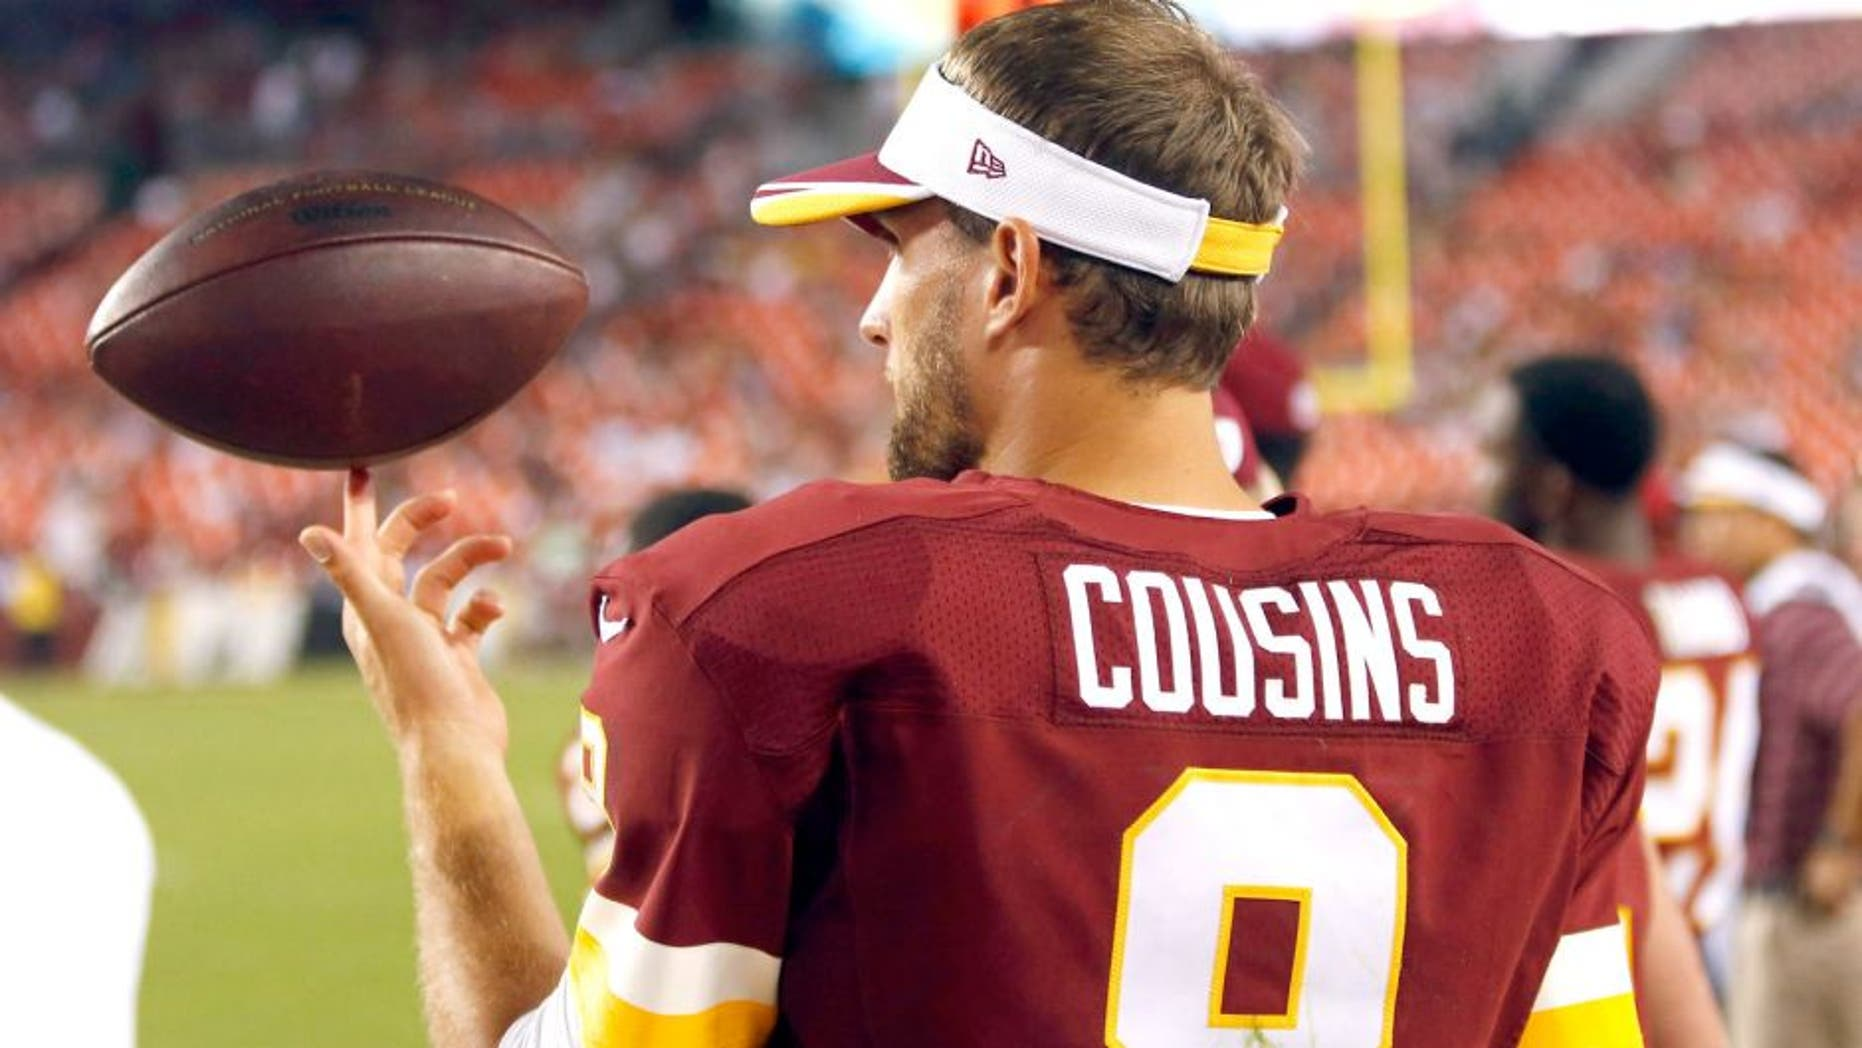 Aug 7, 2014; Landover, MD, USA; Washington Redskins quarterback Kirk Cousins (8) spins a ball on his finger on the sidelines against the New England Patriots in the third quarter at FedEx Field. The Redskins won 23-6. Mandatory Credit: Geoff Burke-USA TODAY Sports